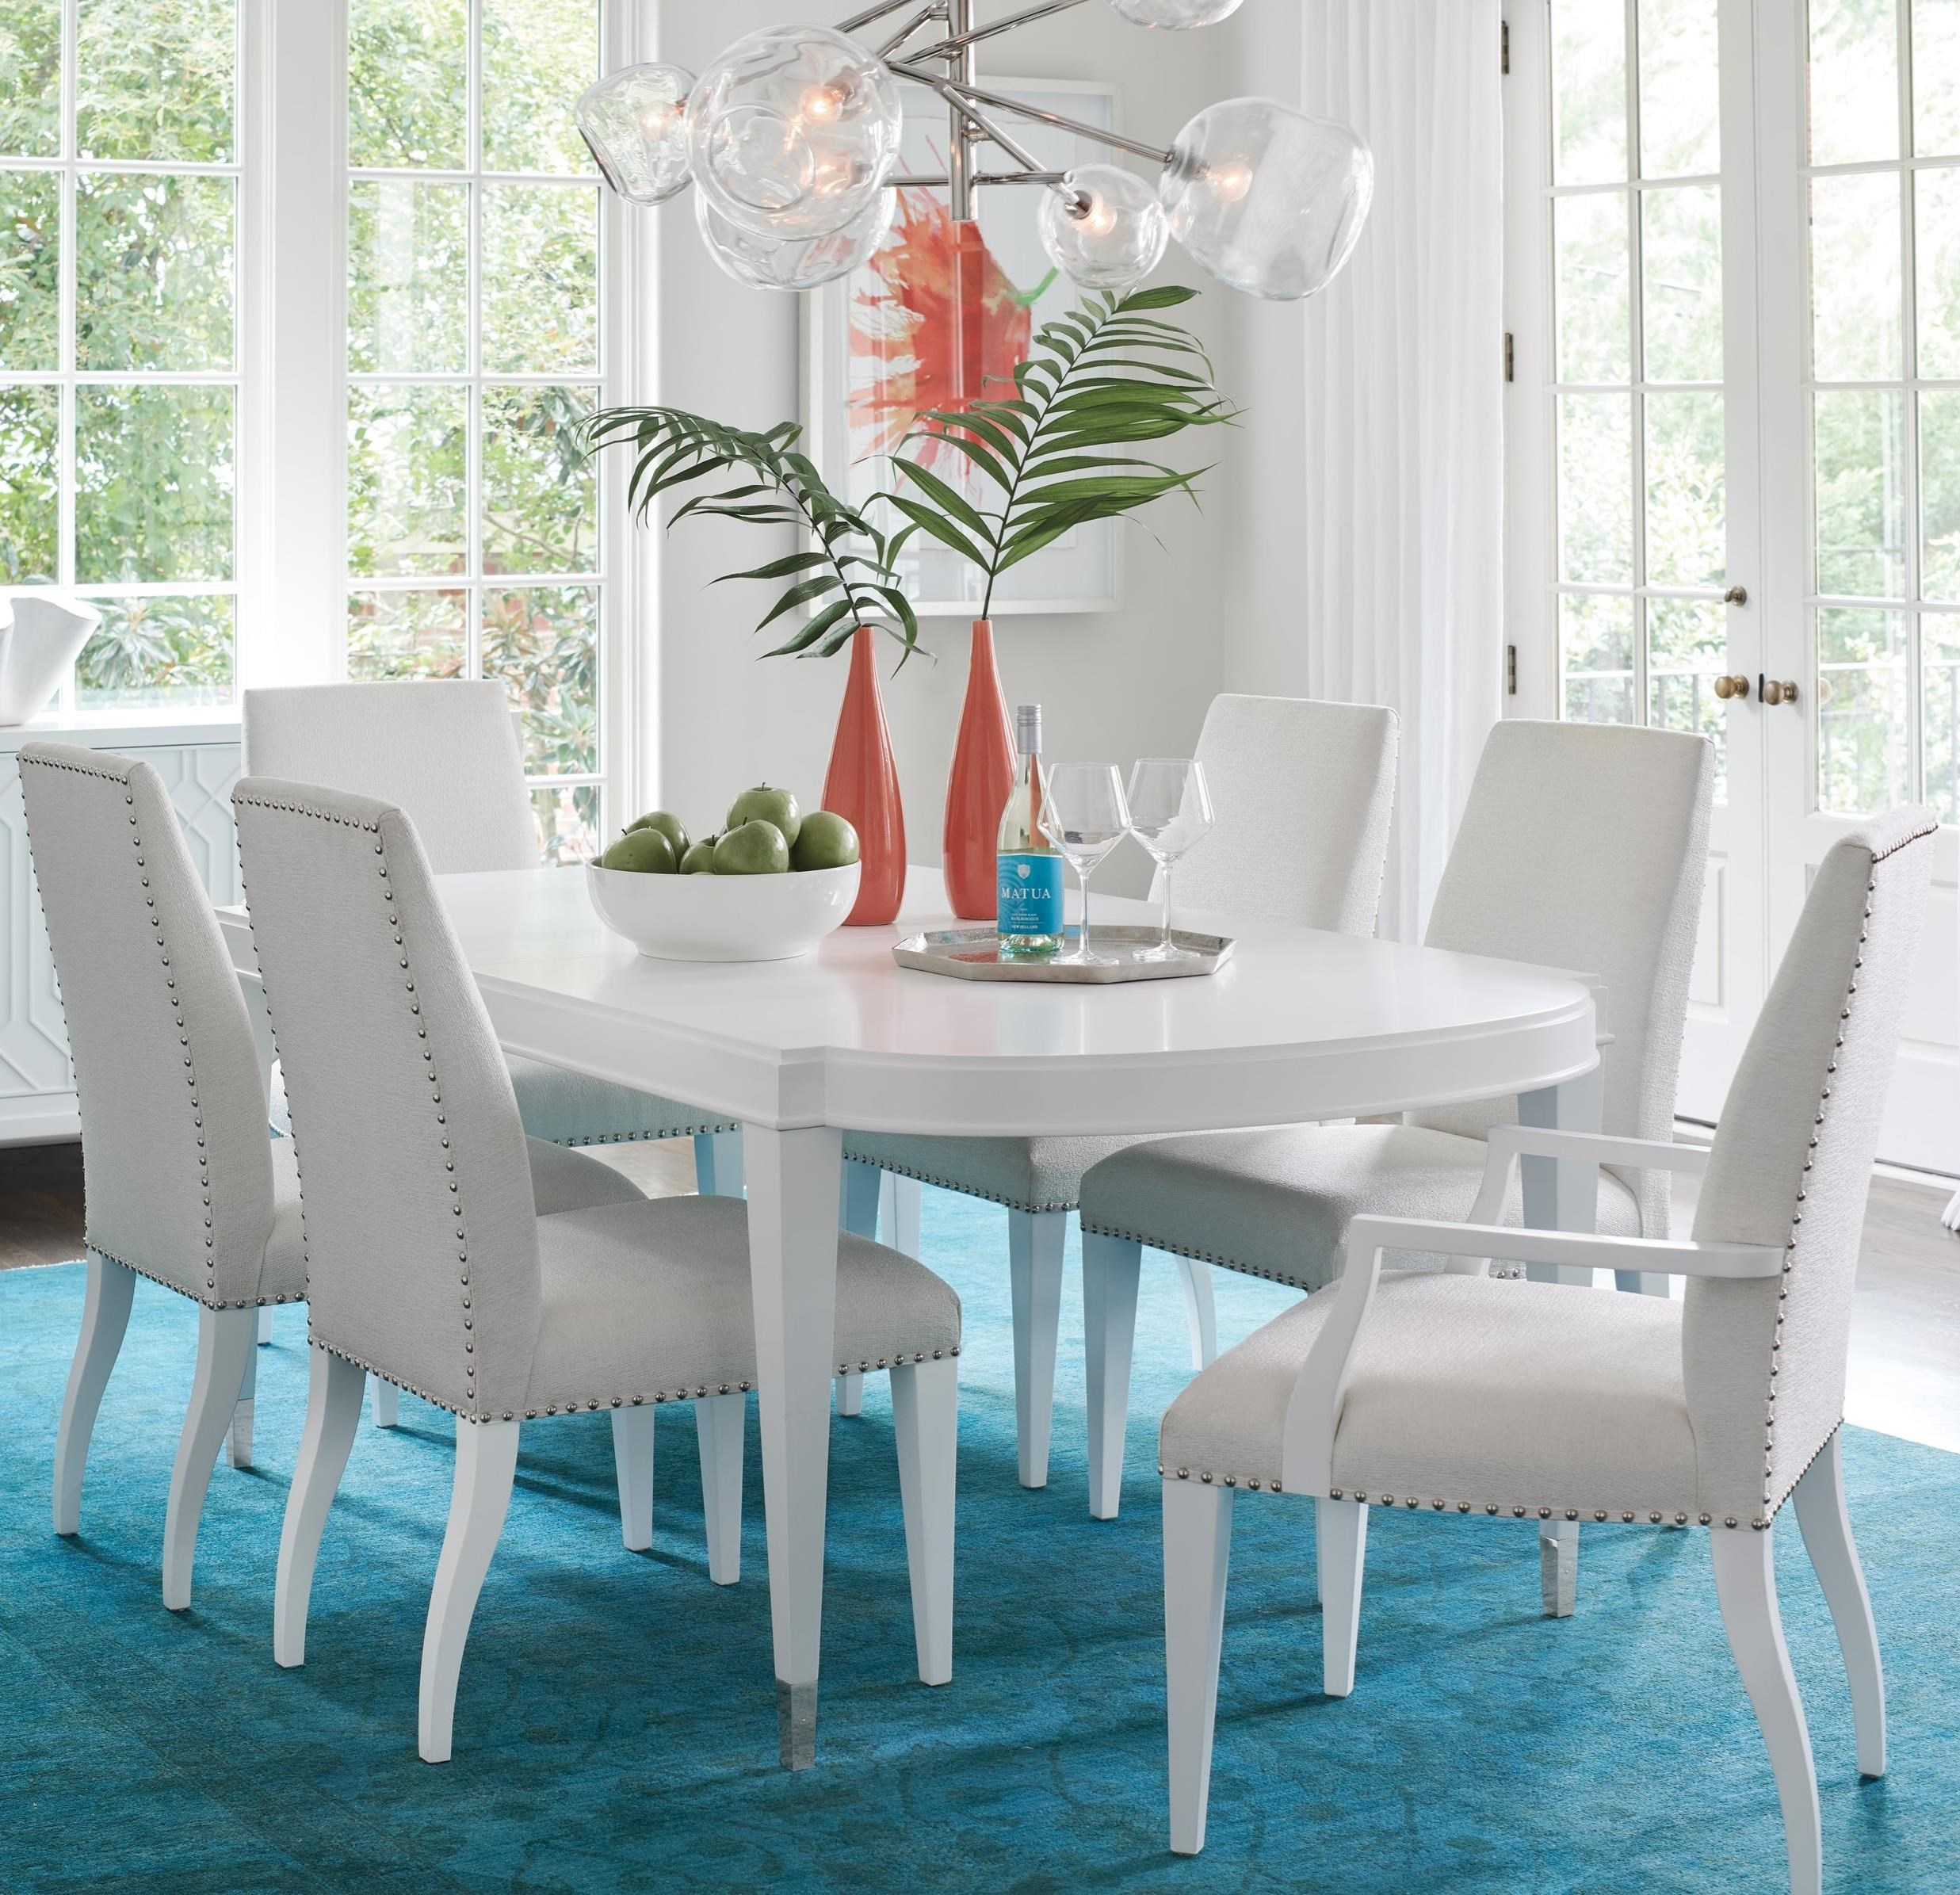 Avondale 7 Piece Dining Set by Lexington at Fisher Home Furnishings